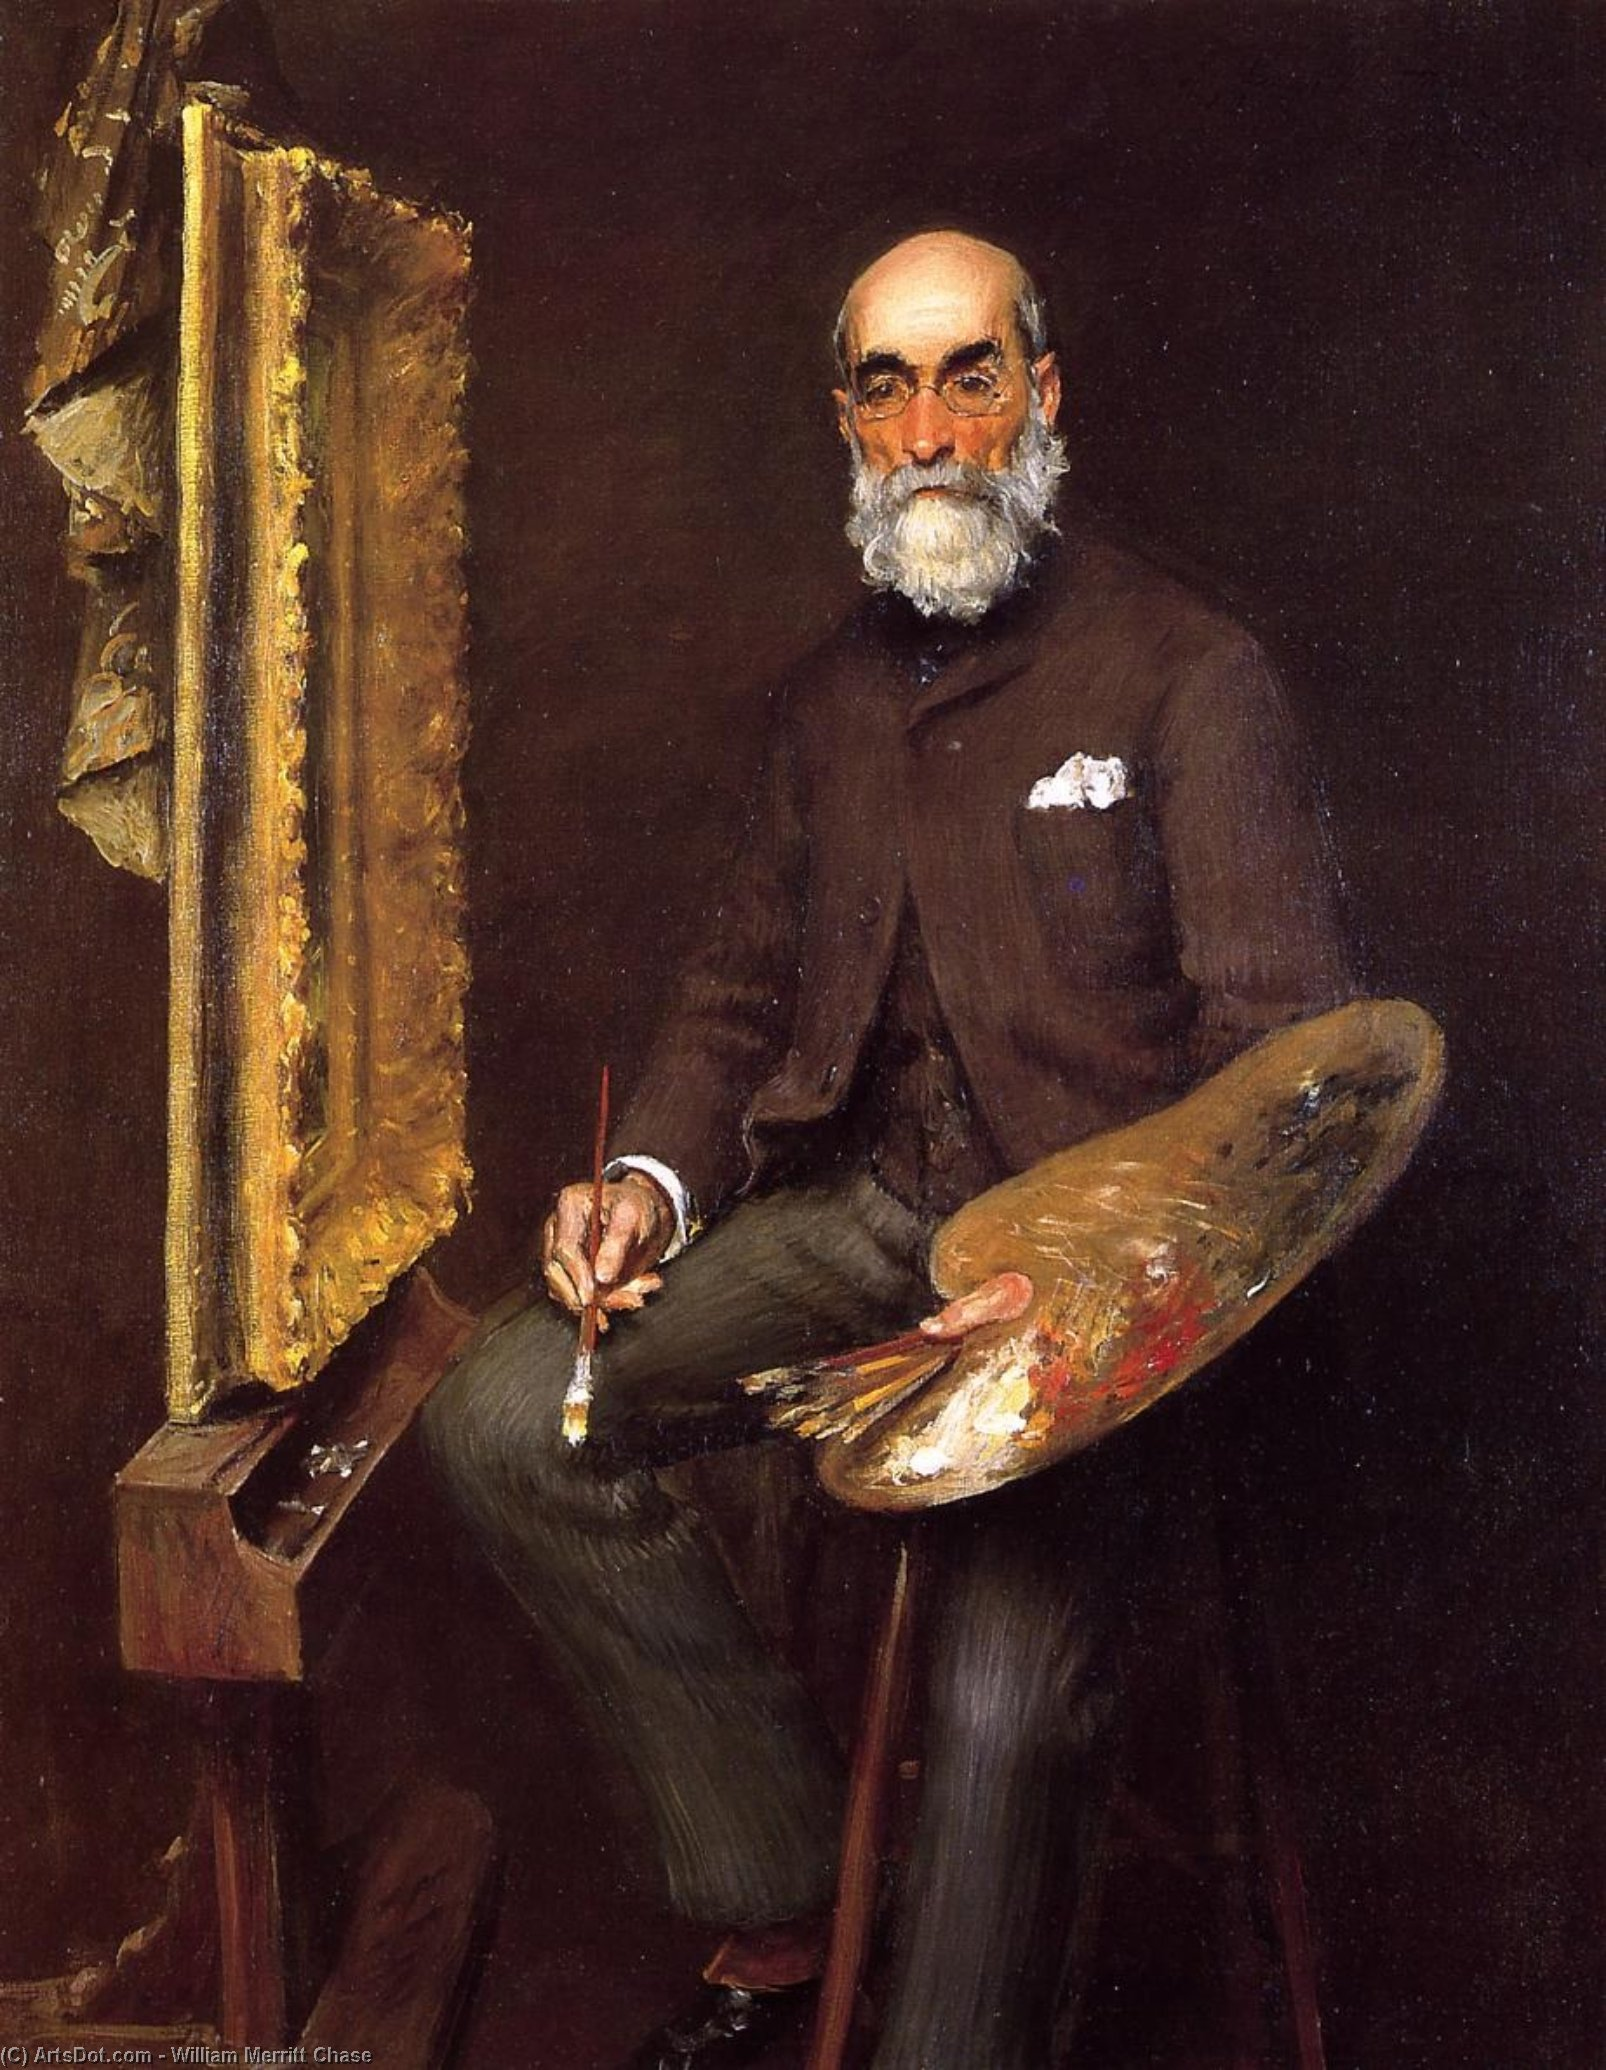 Retrato de Worthington Whittredge, óleo sobre lienzo de William Merritt Chase (1849-1916, United States)